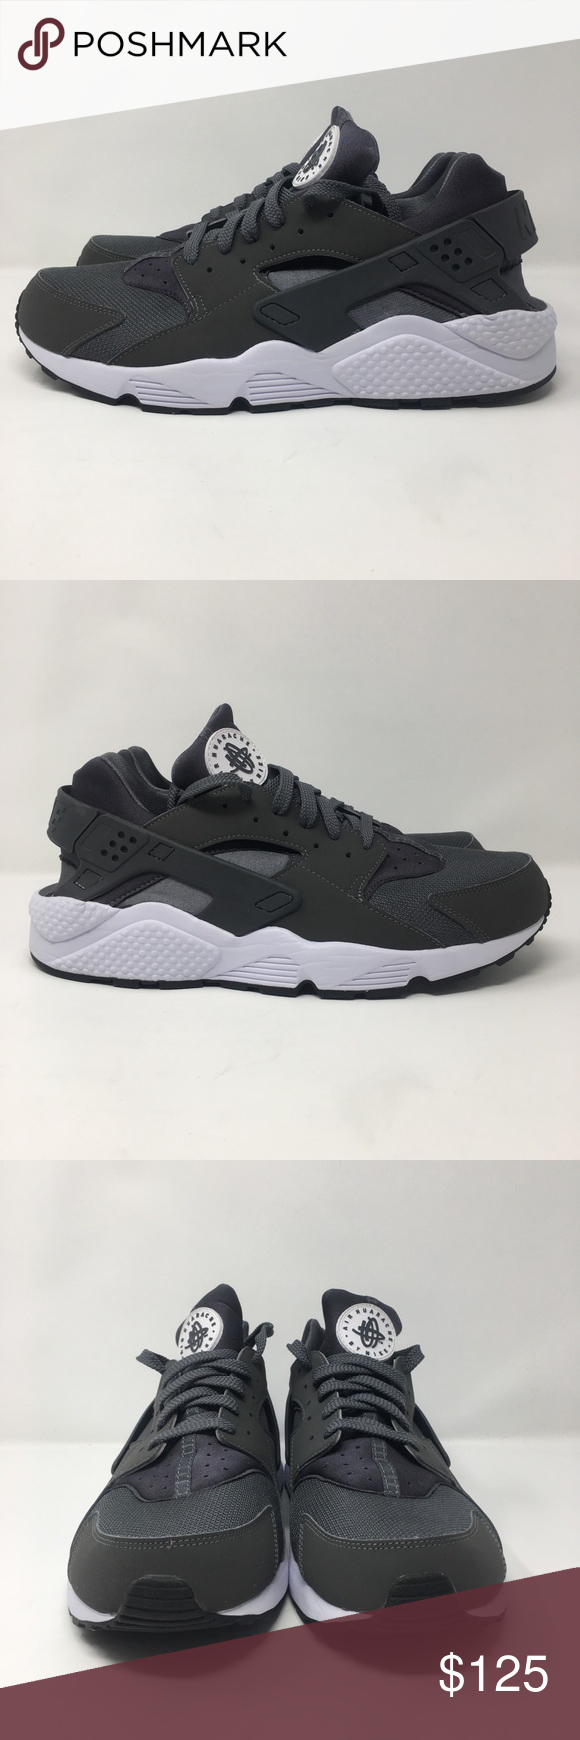 new concept 5cd33 a96ba Nike Air Huarache Mens Dark Grey Athletic Running This is a pair of You are  bidding